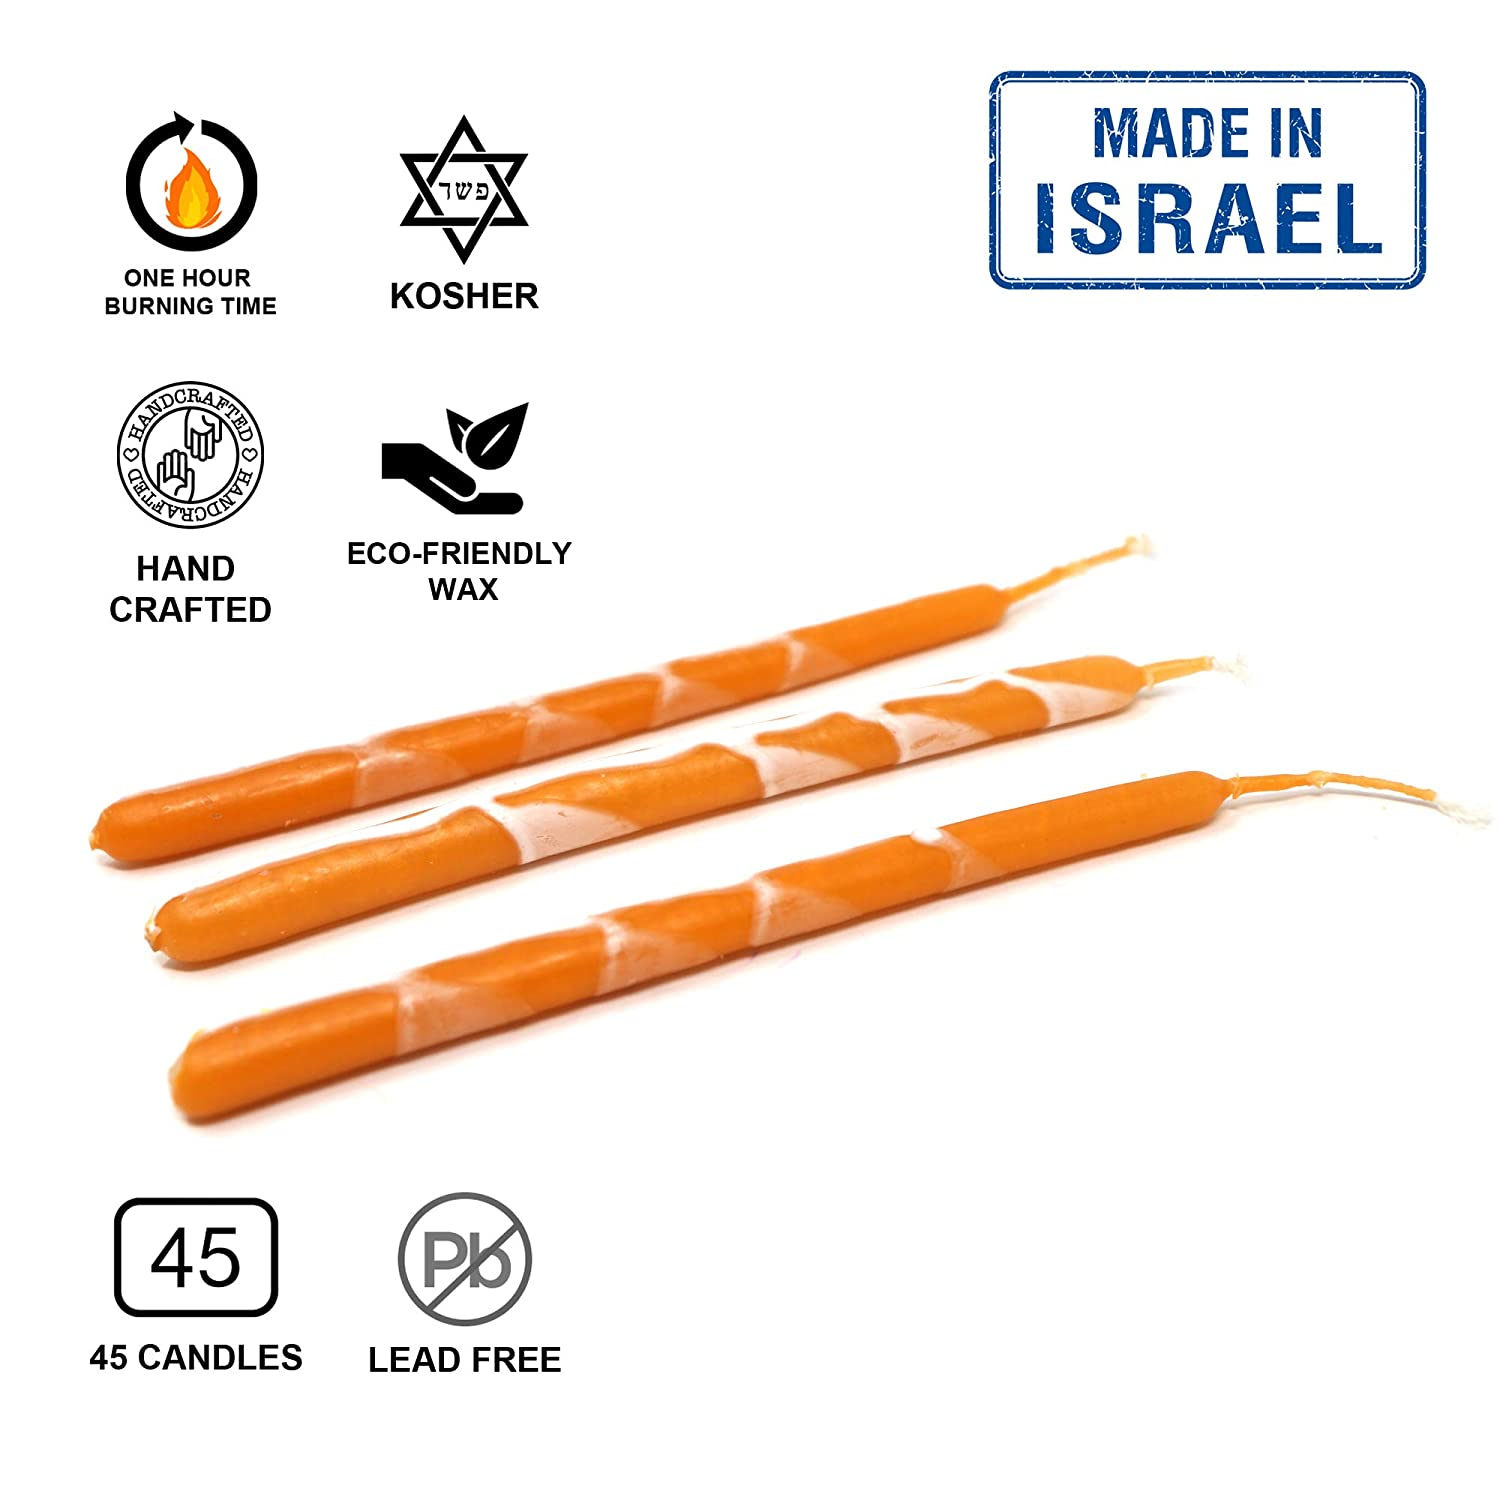 Premium by Safed Candles Fits Most Menorahs Orange Handcrafted in Israel Wax Dripless Kosher Hanukkah Candles Box of 45 for Chanukah